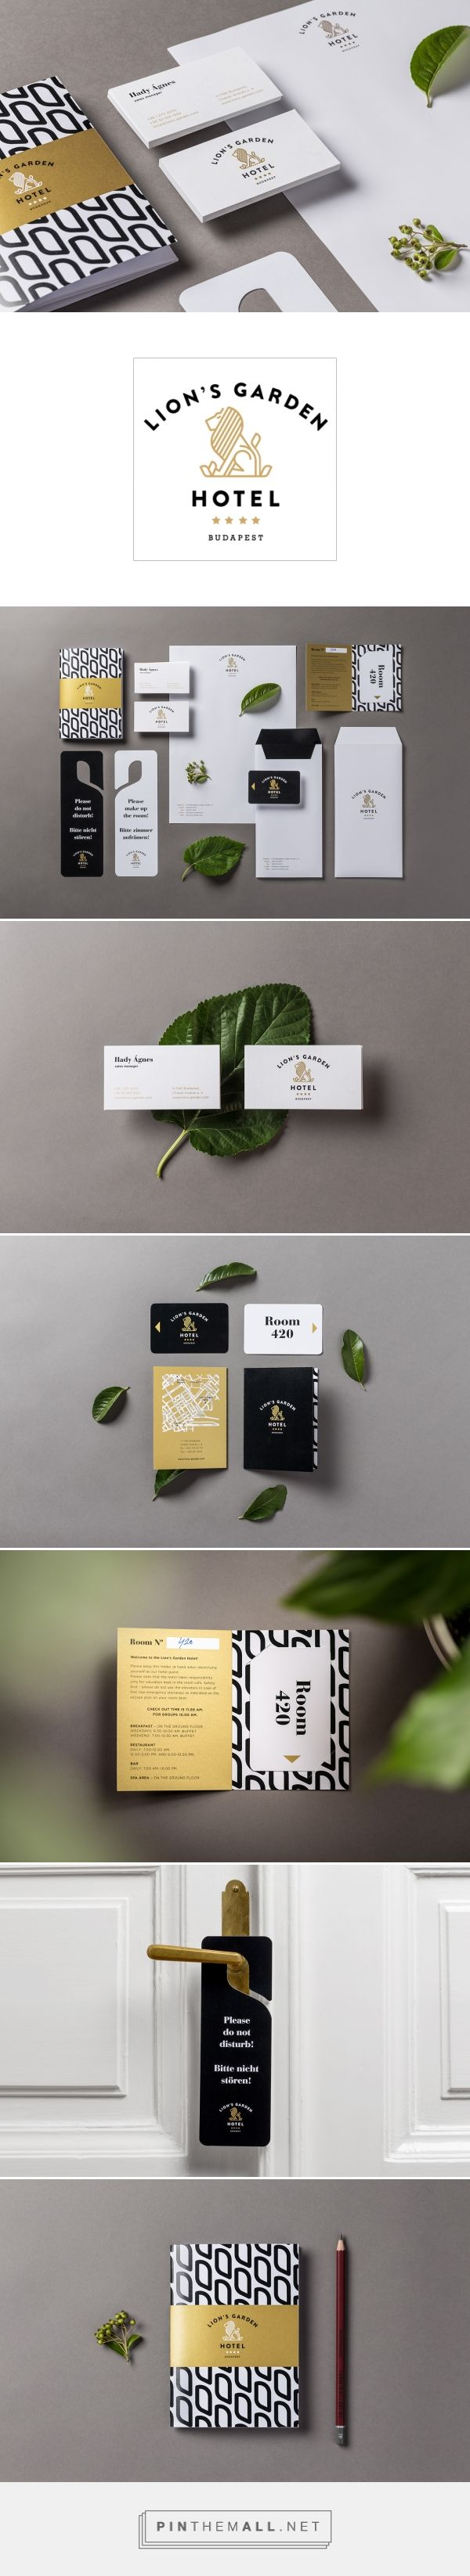 Lion's Garden Hotel on Behance | Fivestar Branding – Design and Branding Agency…